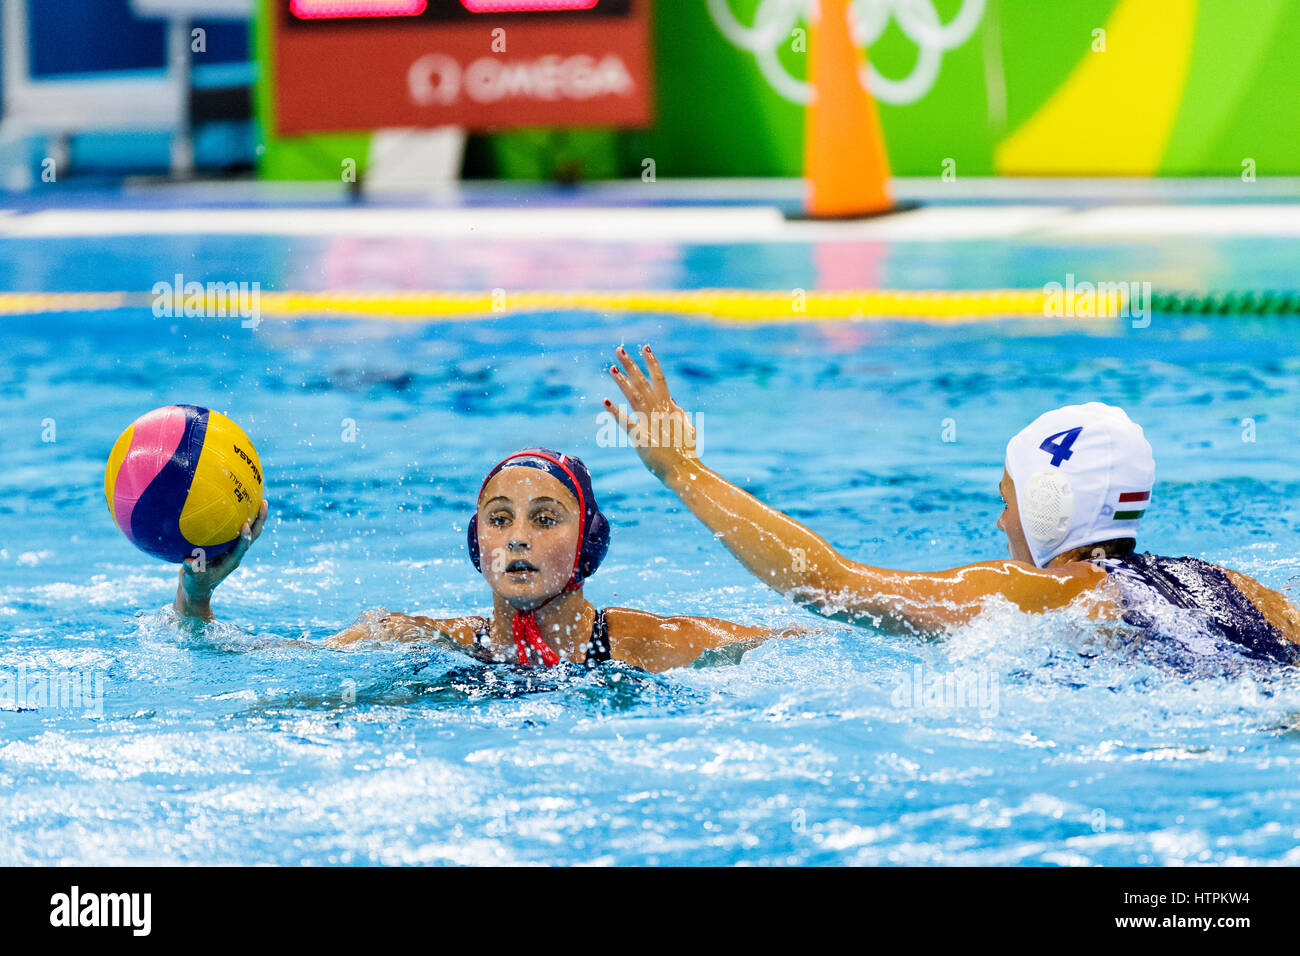 Rio de Janeiro, Brazil. 18 August 2016 Maddie Musselman (USA) competes in the women's water polo match vs. Hungary - Stock Image